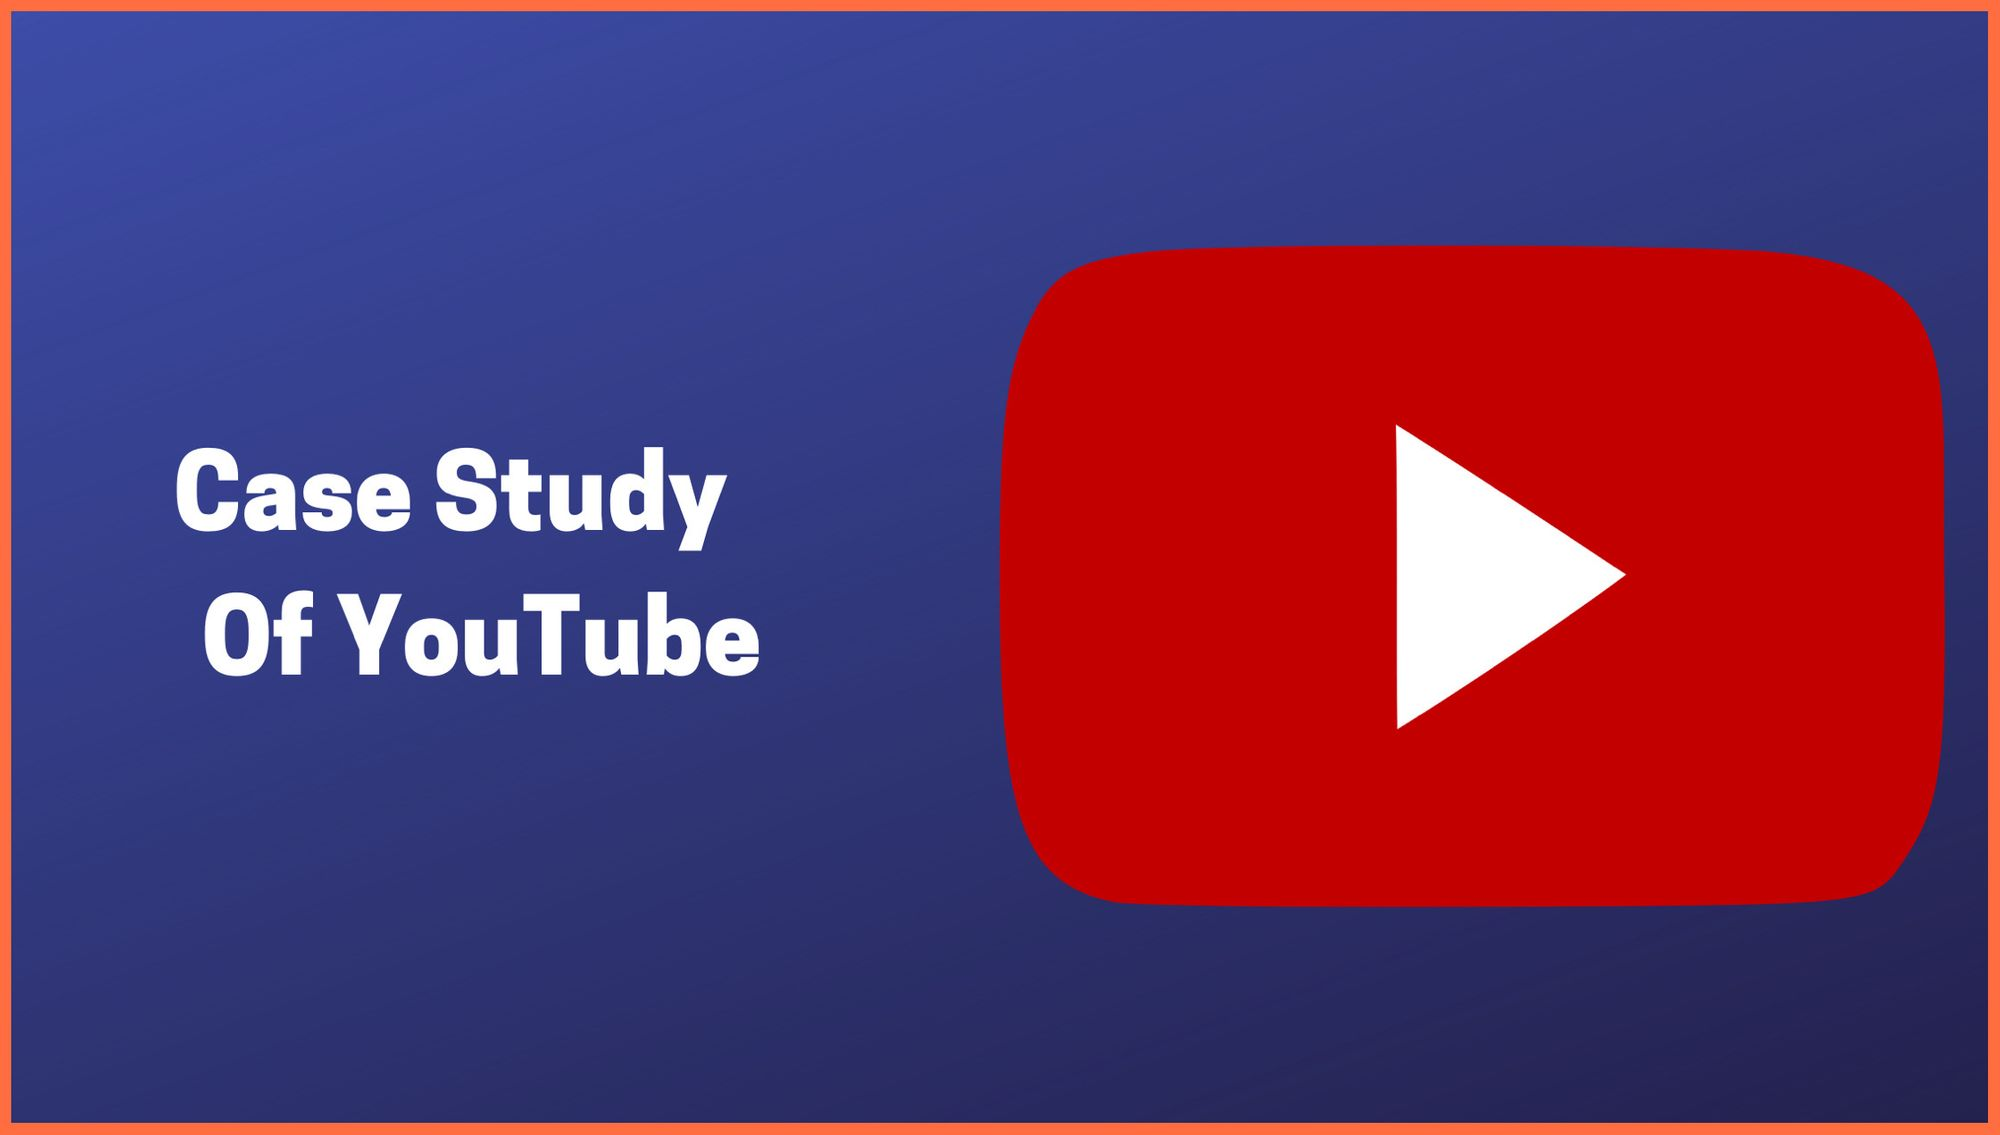 Learn How To Make More Money With Business Model of YouTube